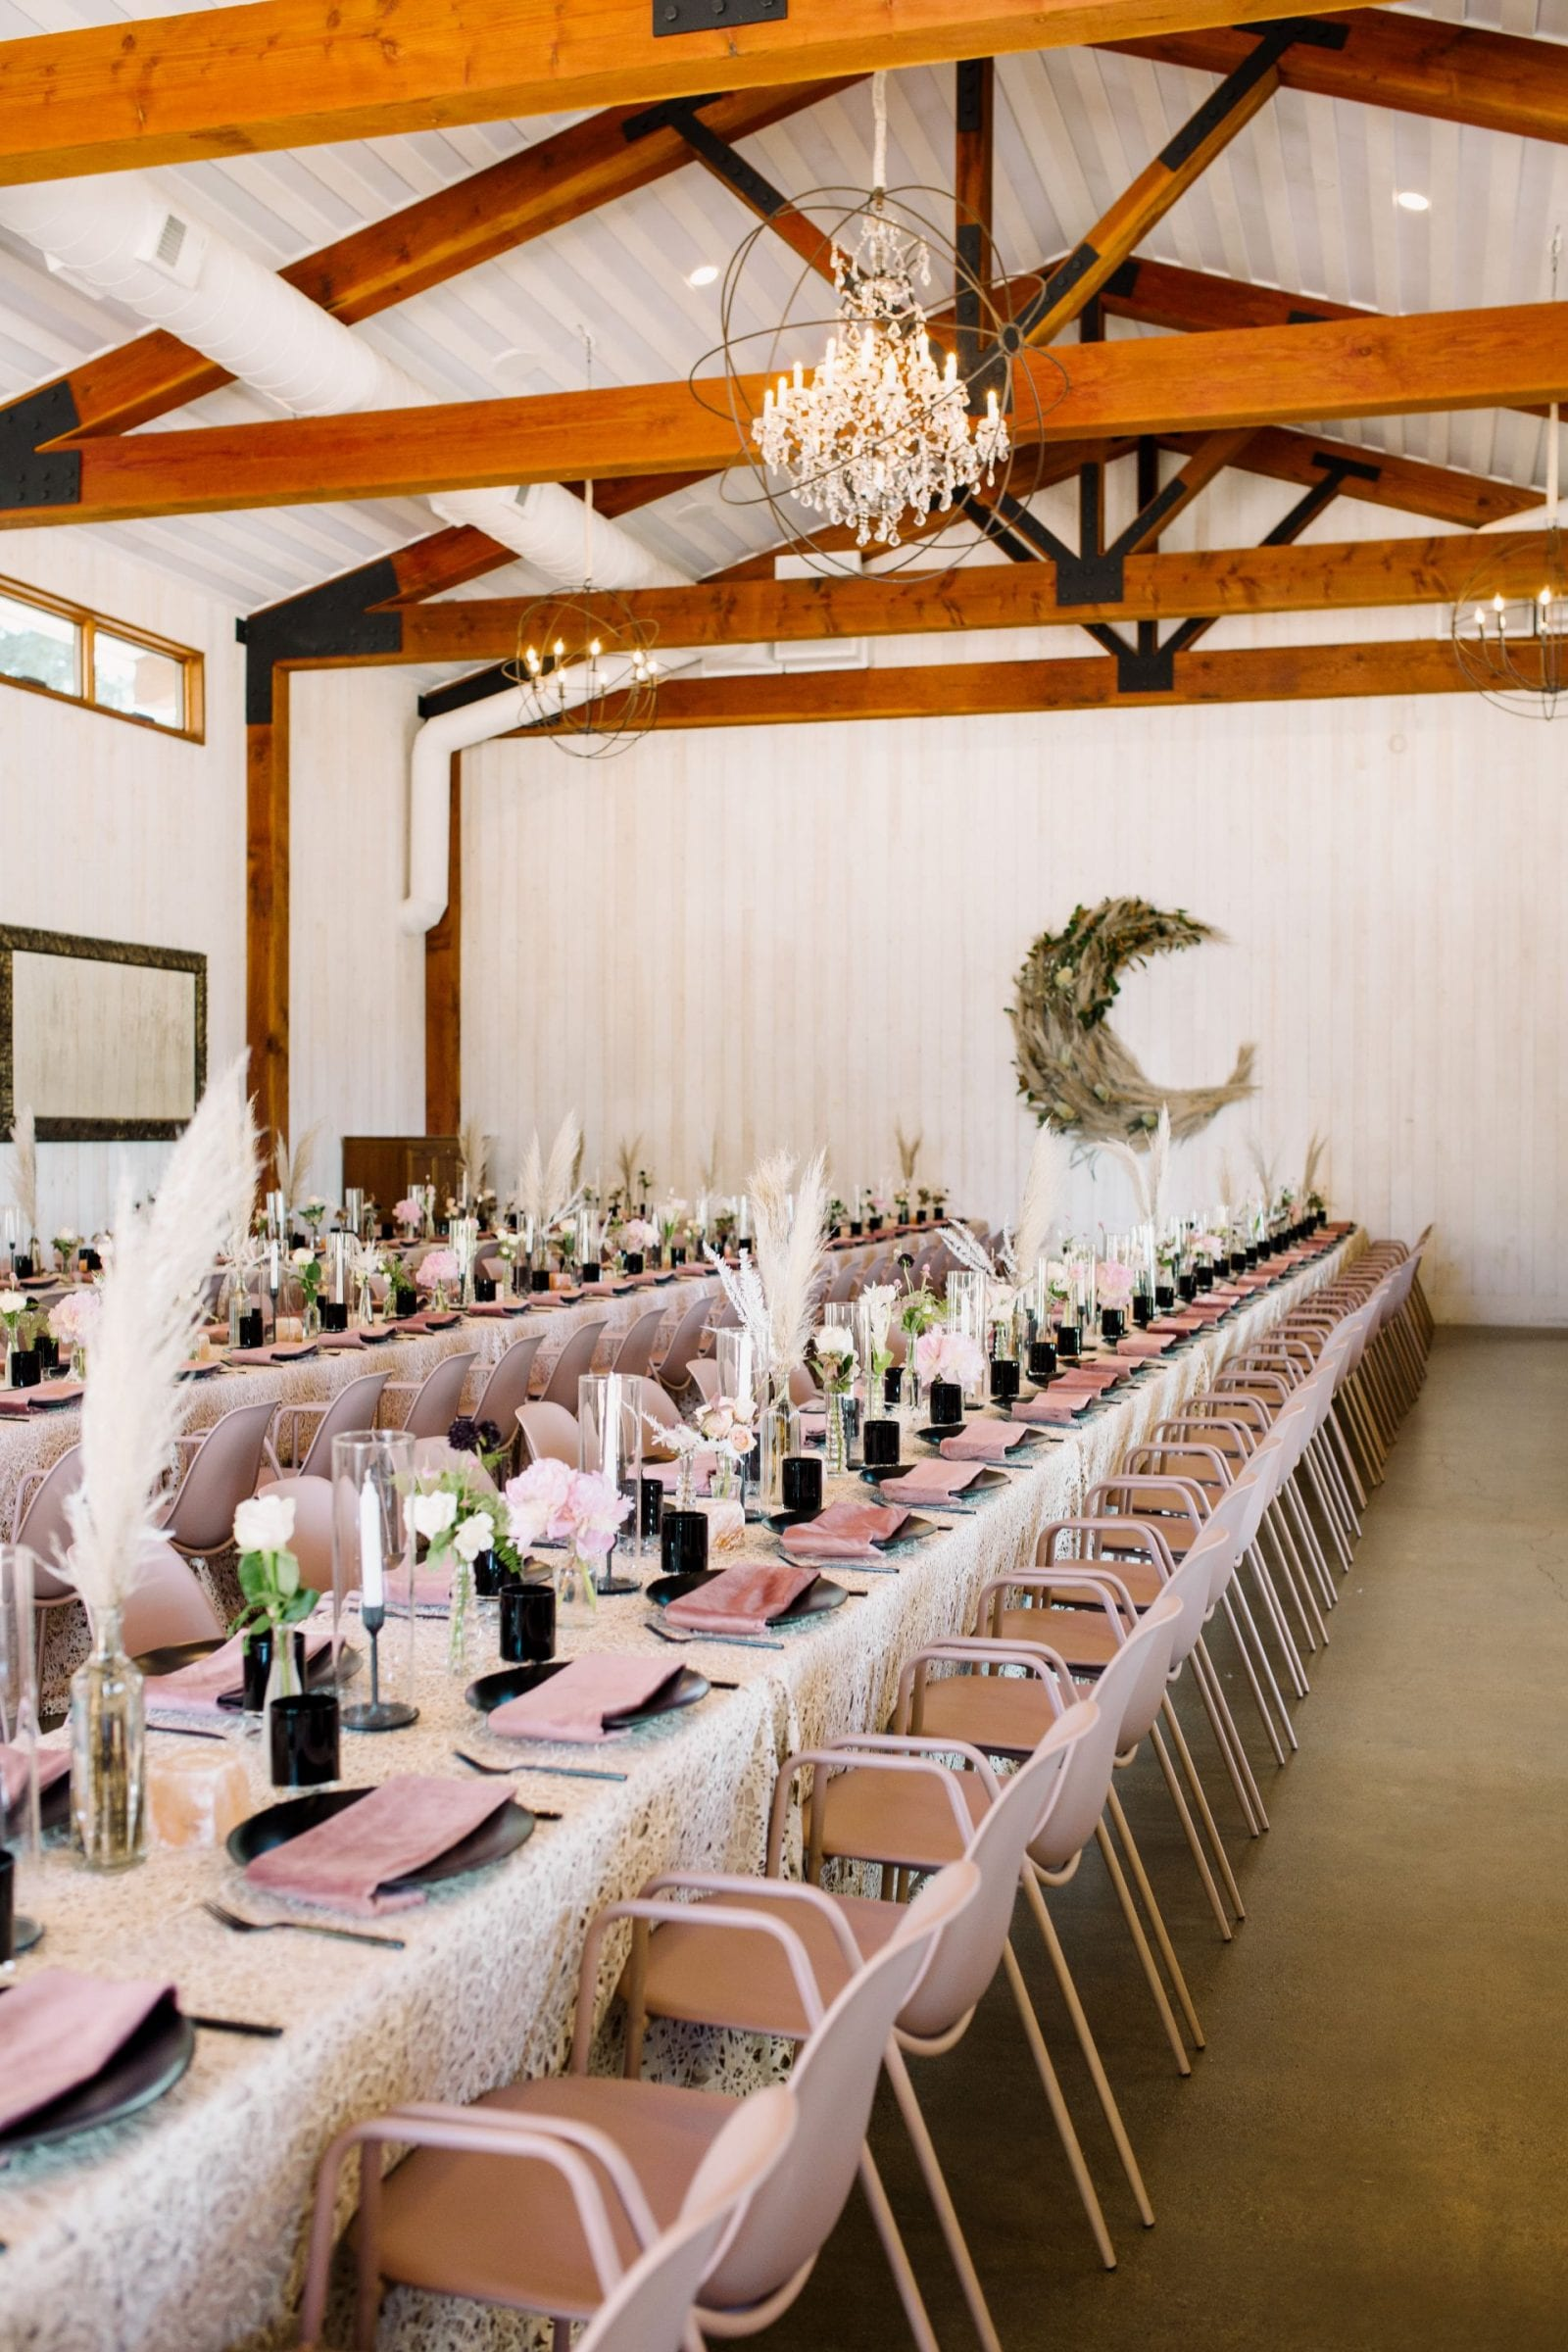 Park Winters Summerland 2019 | Installation Design | Party Inspiration | Floral Design | Tablescape | Wedding Inspiration | SarahMichiko.com